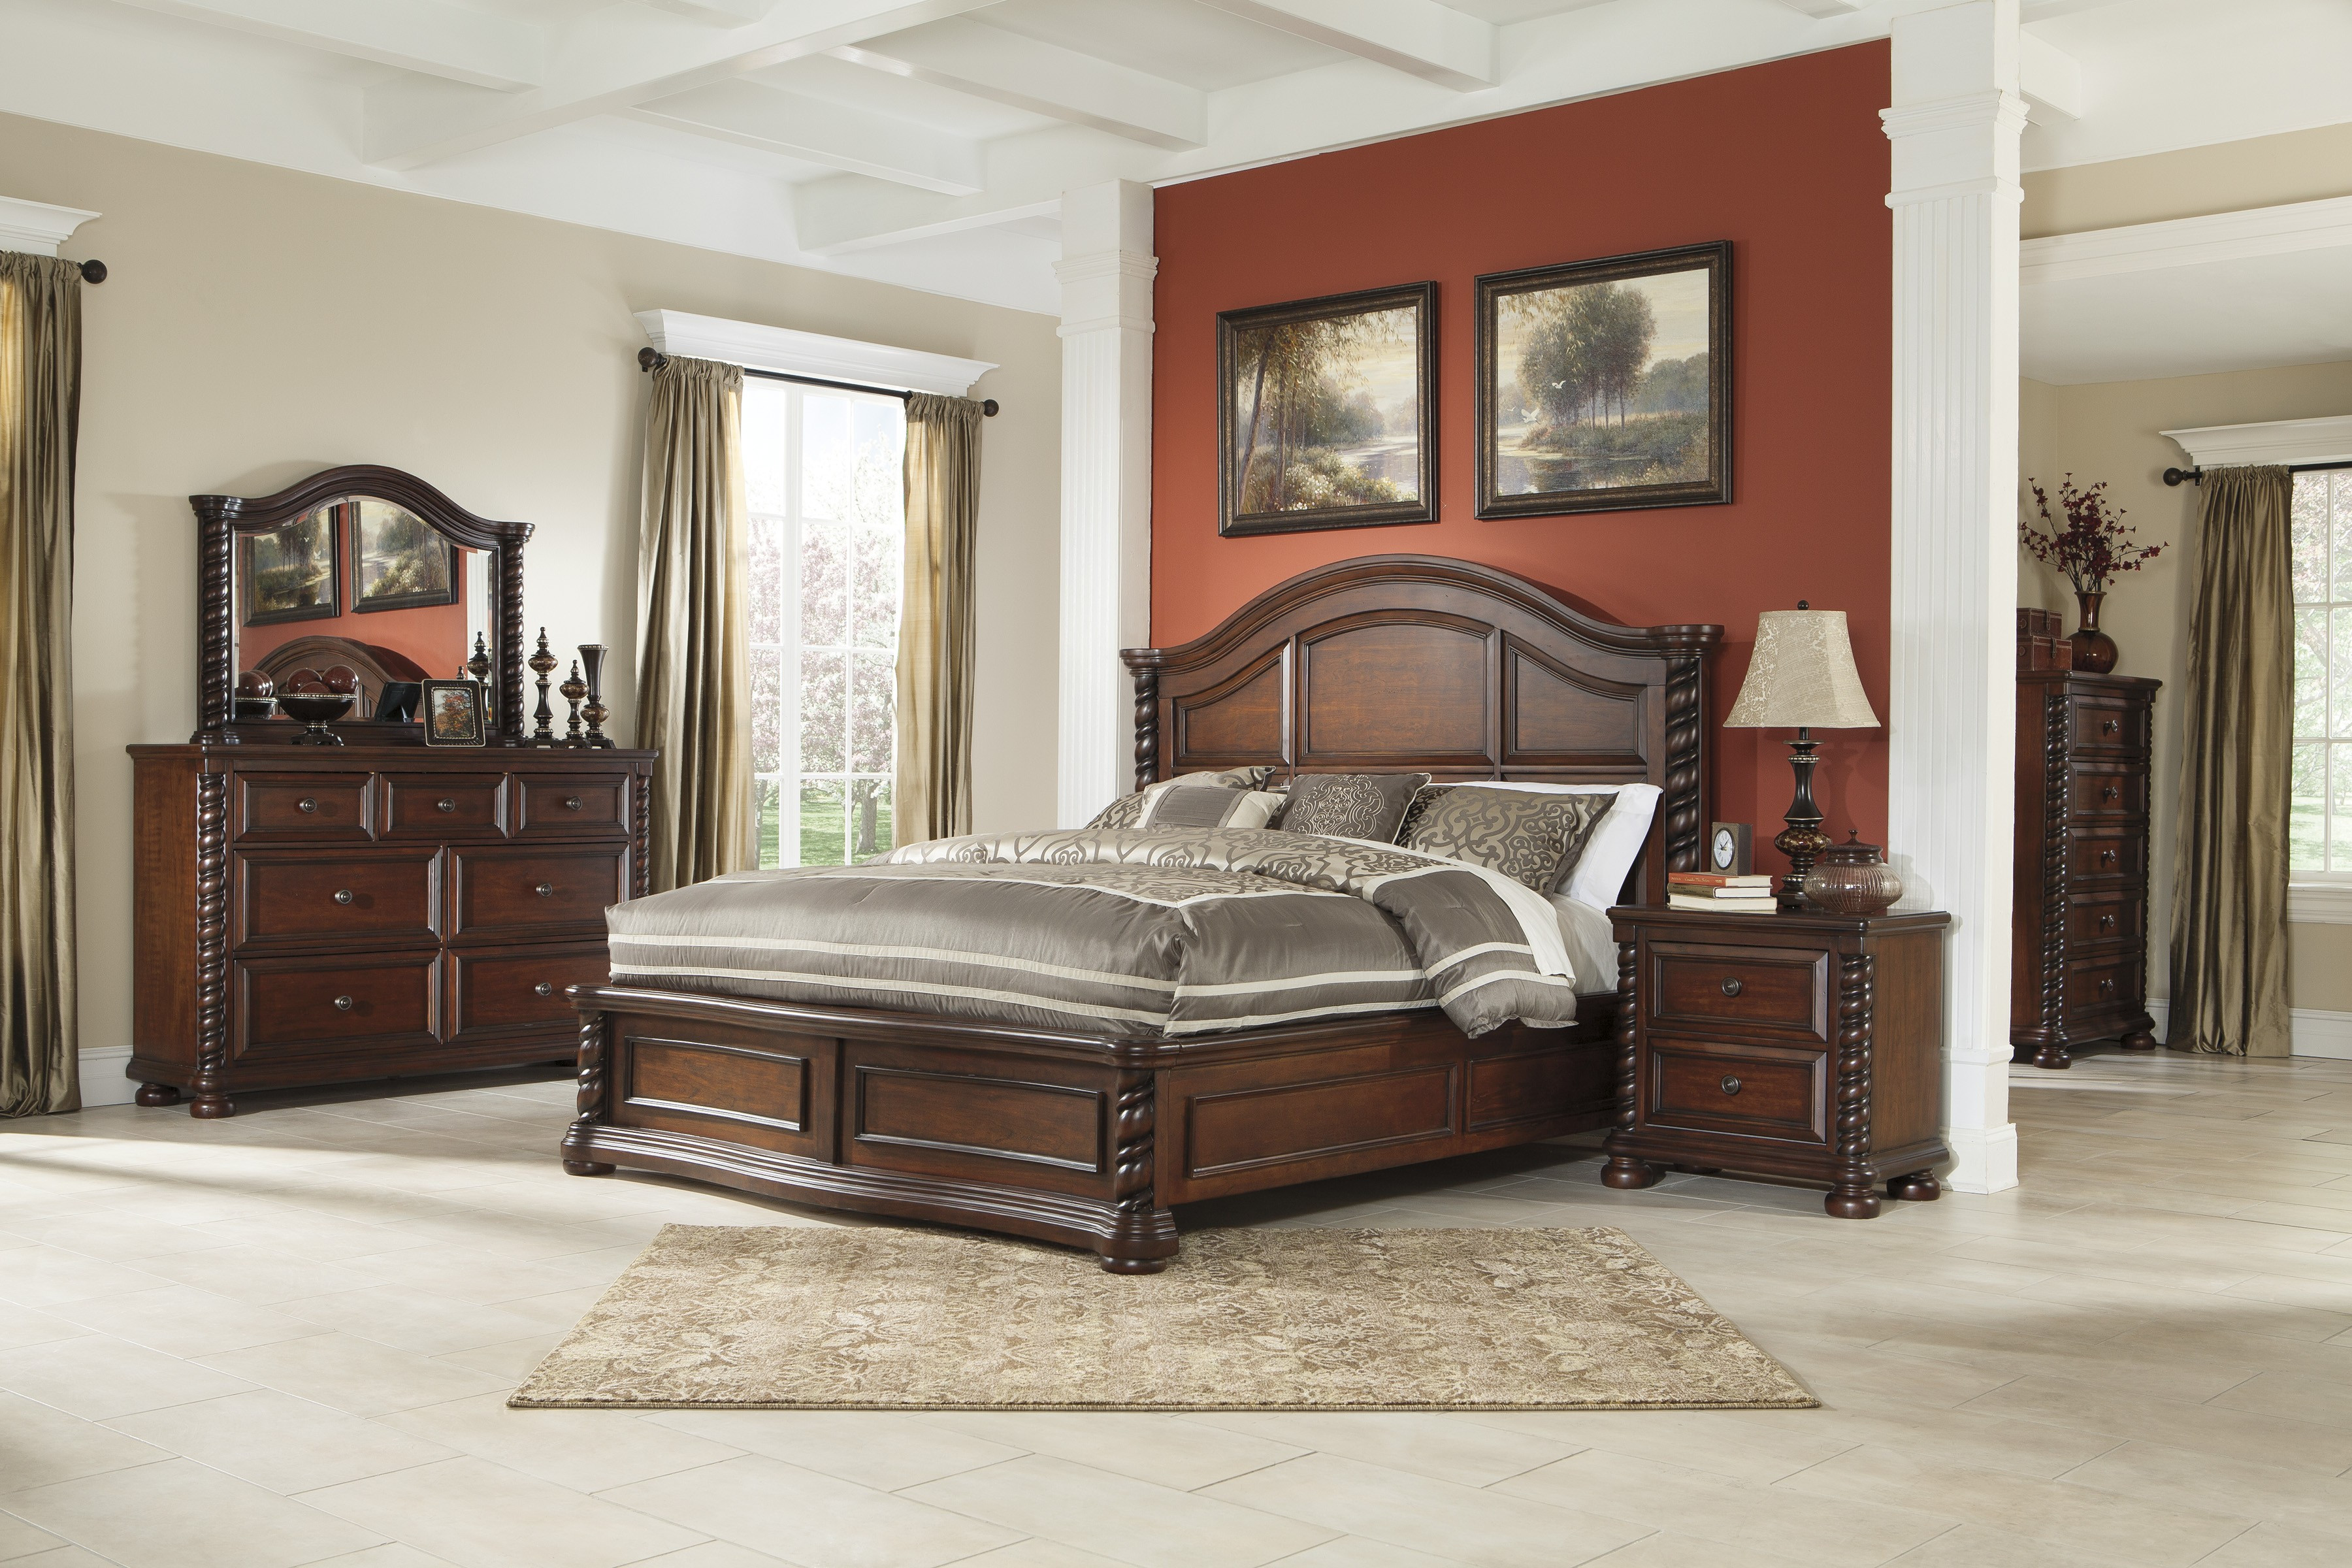 Best ideas about Ashley Bedroom Furniture . Save or Pin Brennville Bedroom Set by Ashley Furniture Depot Red Now.